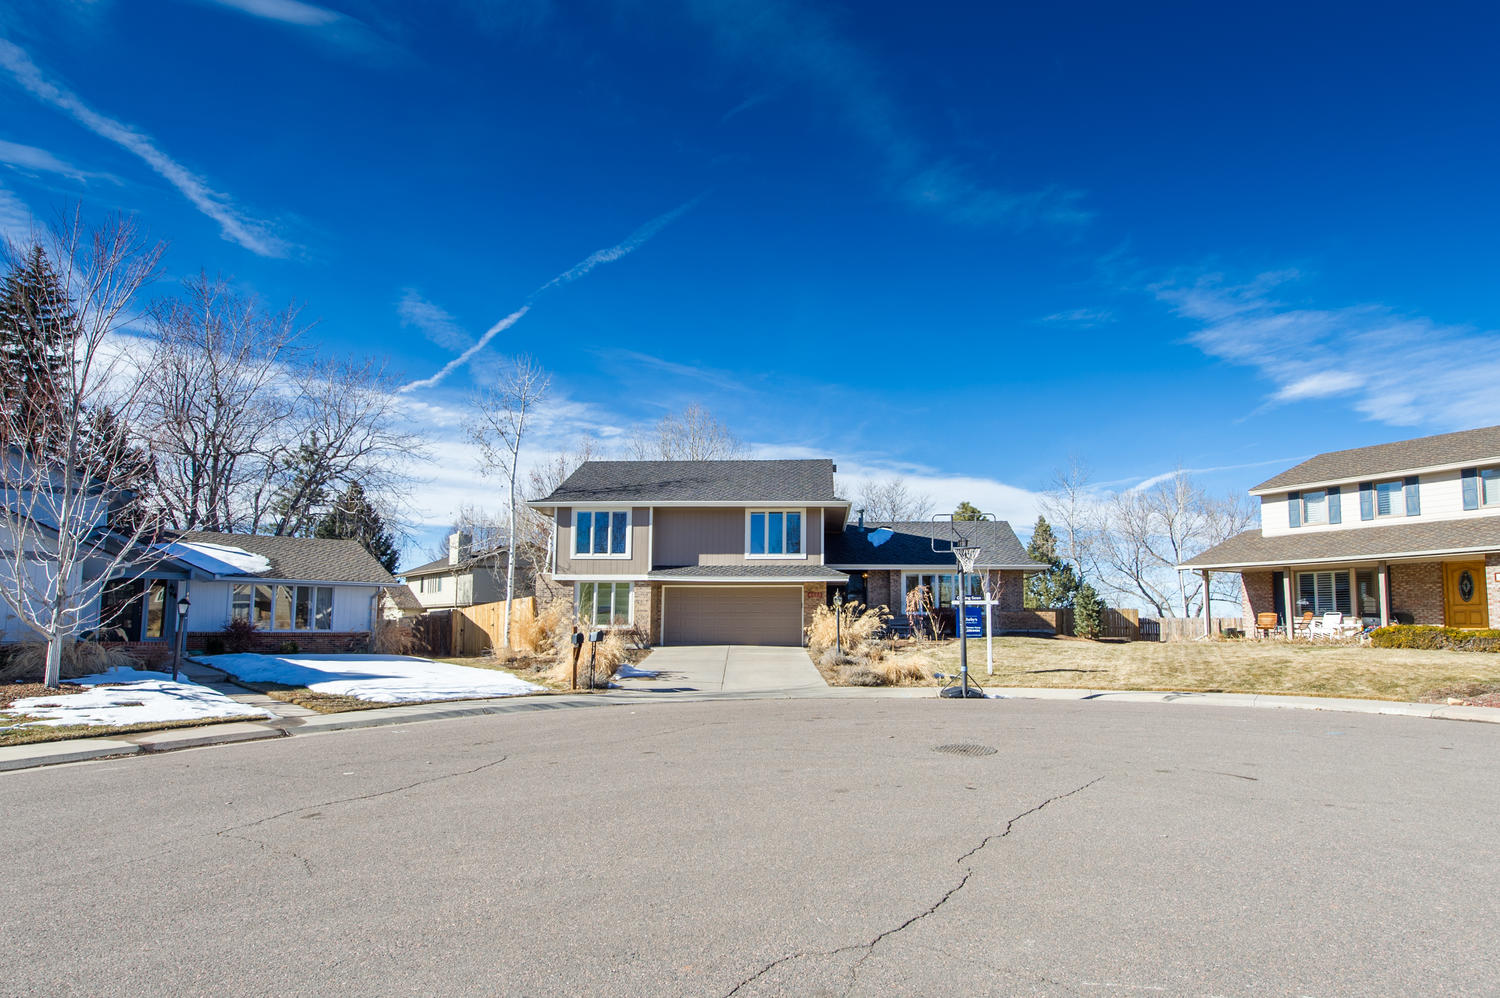 4655 E Links Dr, Littleton, CO 80122